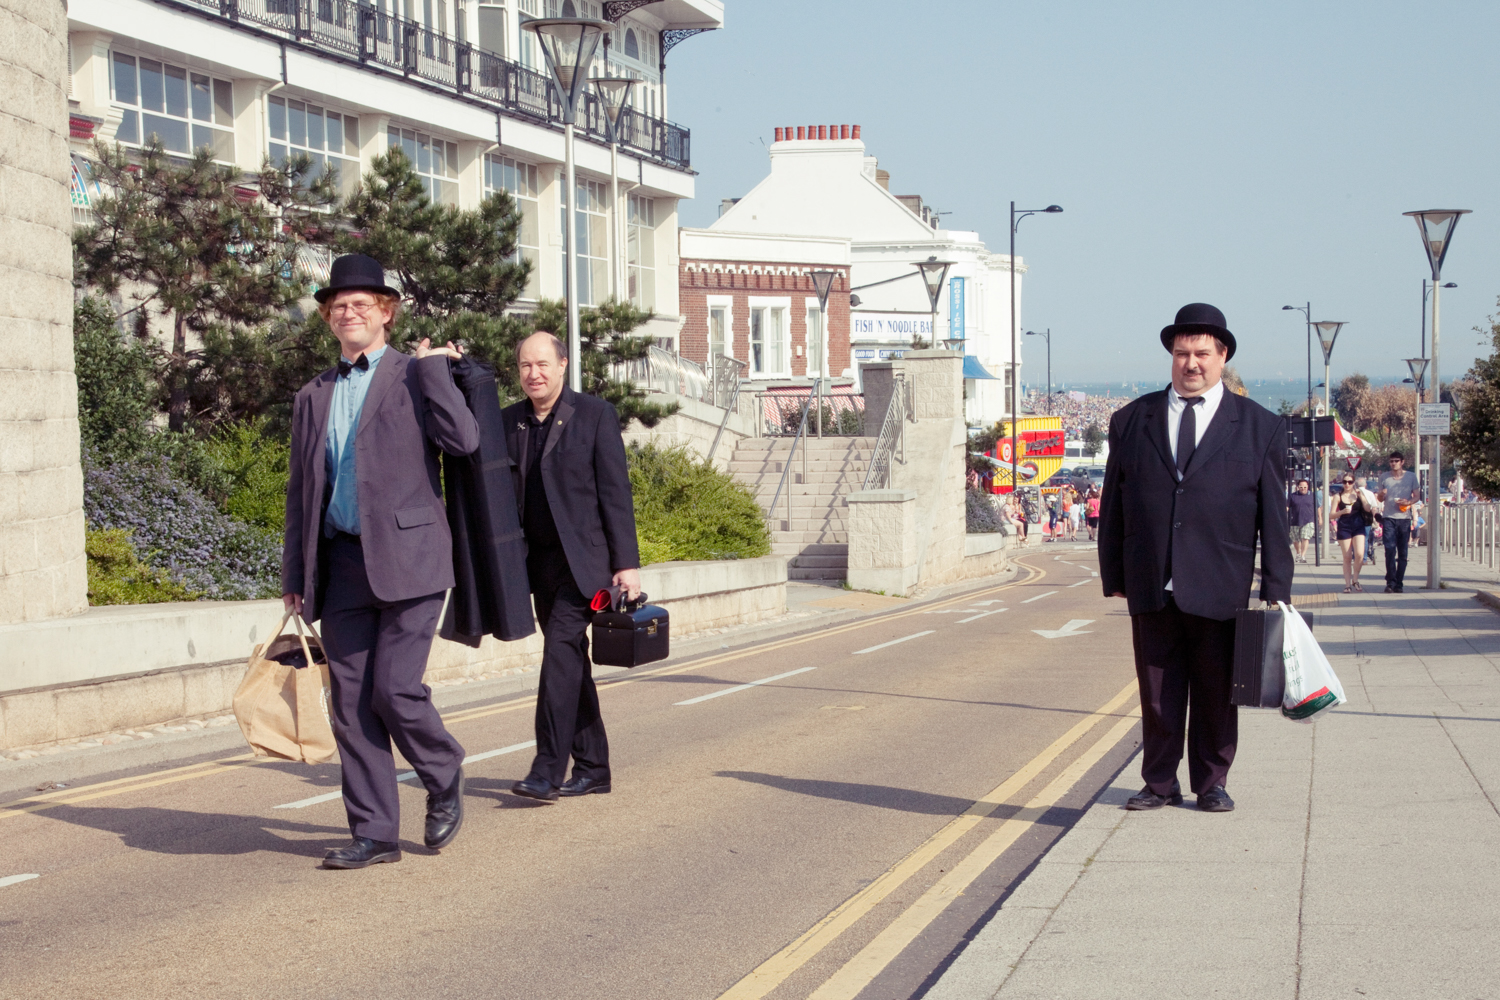 Performers - Southend - 2013